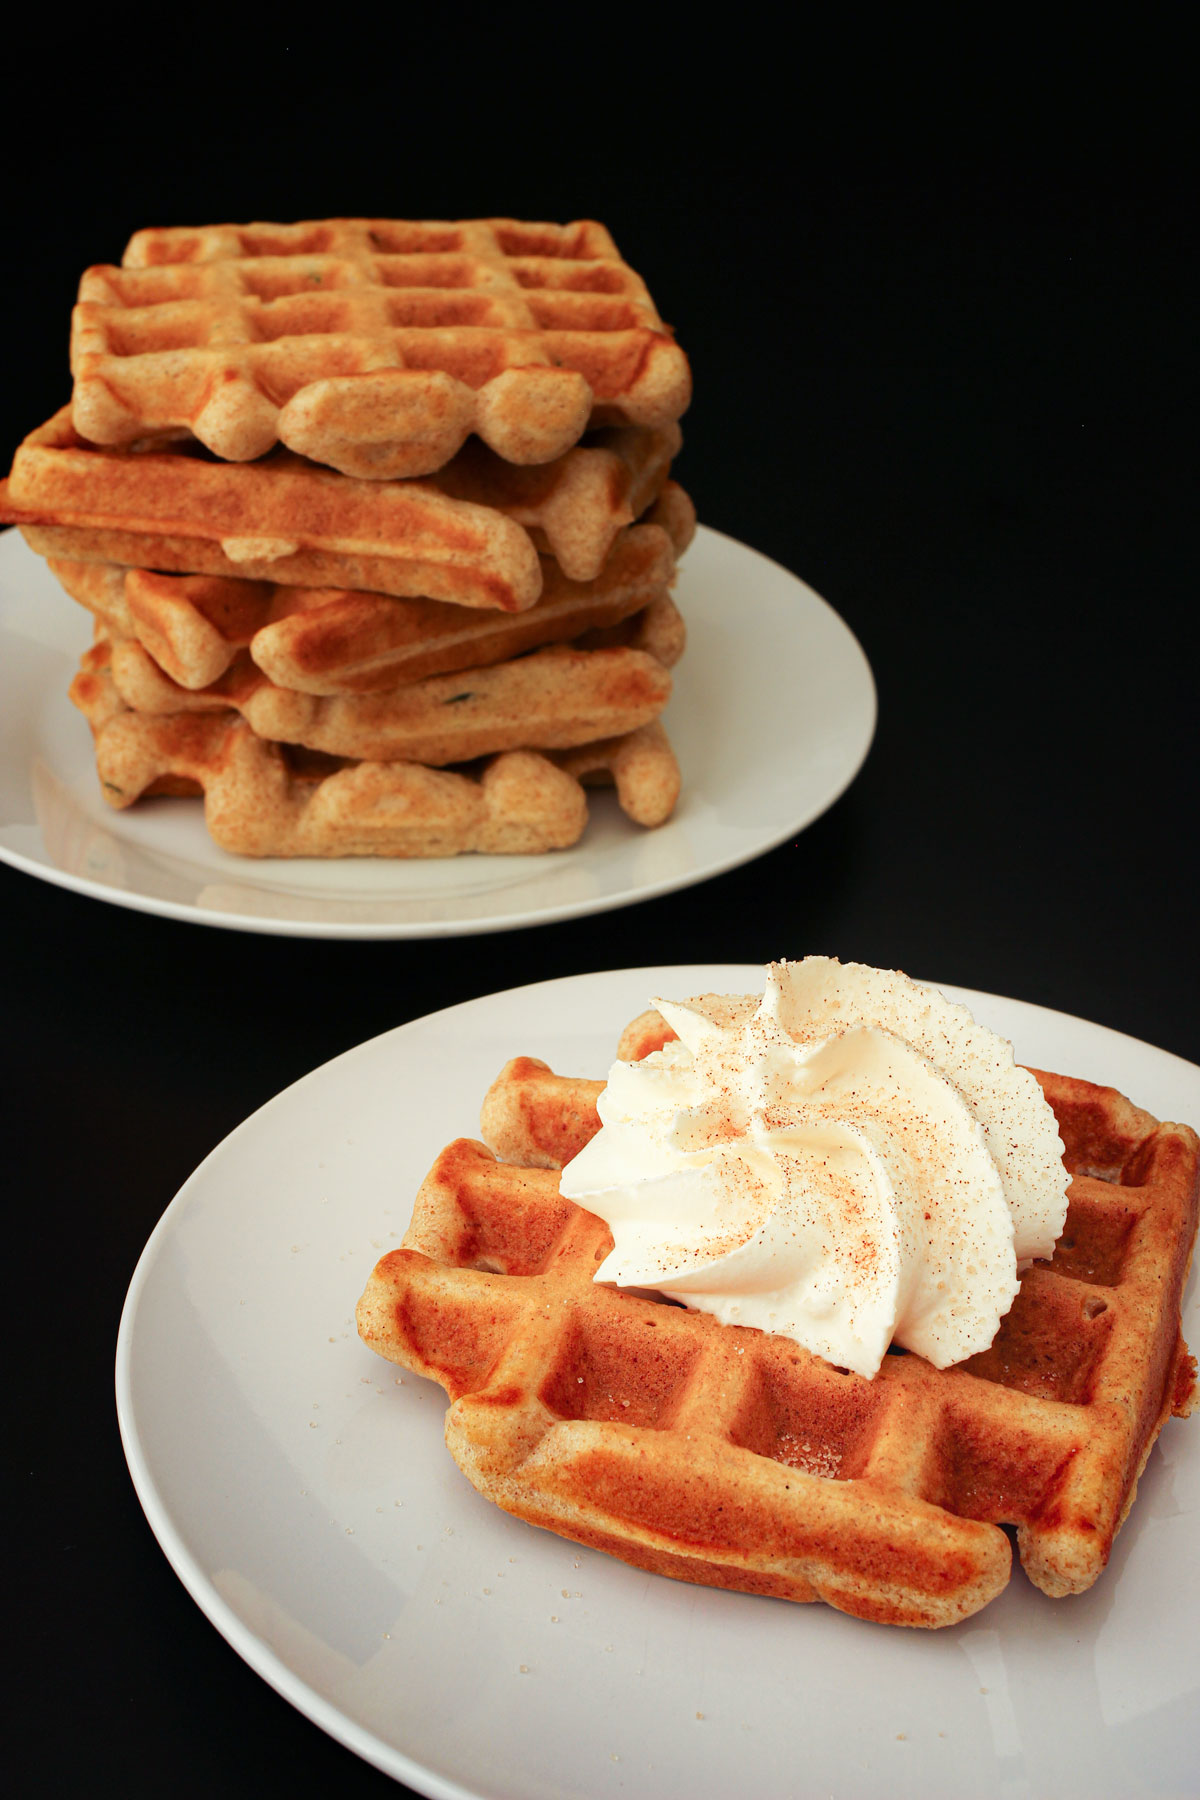 stack of cinnamon waffles next to a plate with a single waffle topped with whipped cream and cinnamon sugar.